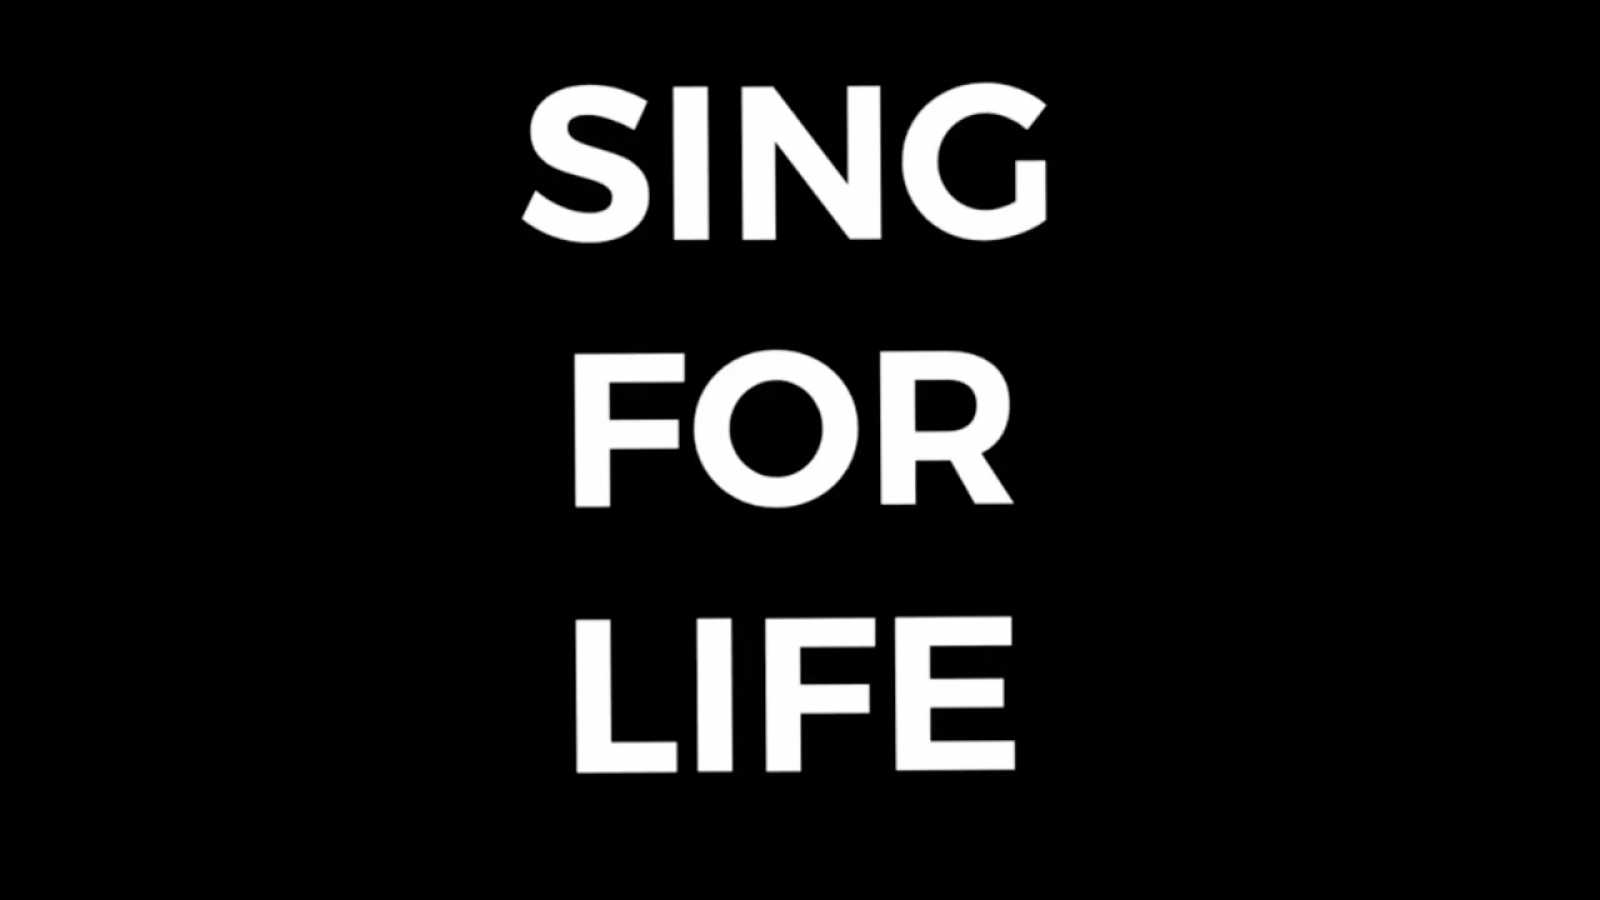 YOSHIKI Collaborates with Bono, will.i.am, and Jennifer Hudson for #SING4LIFE © SING4LIFE